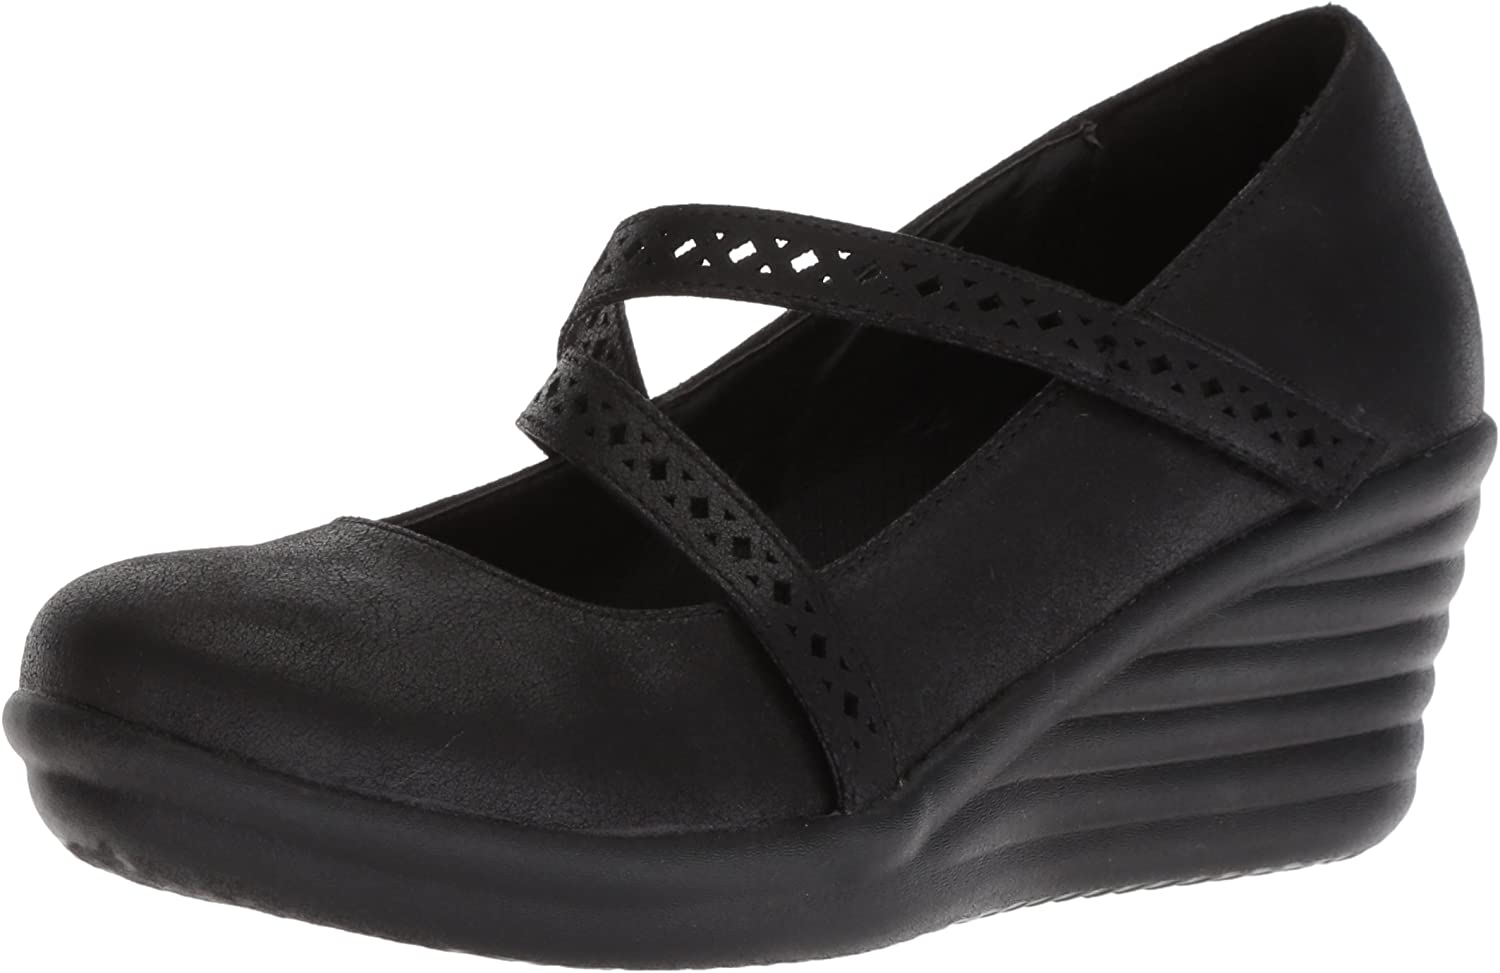 Skechers Womens Rumbler Wave - Filigree - Laser-Cut Strap Mary Jane Wedge Pump